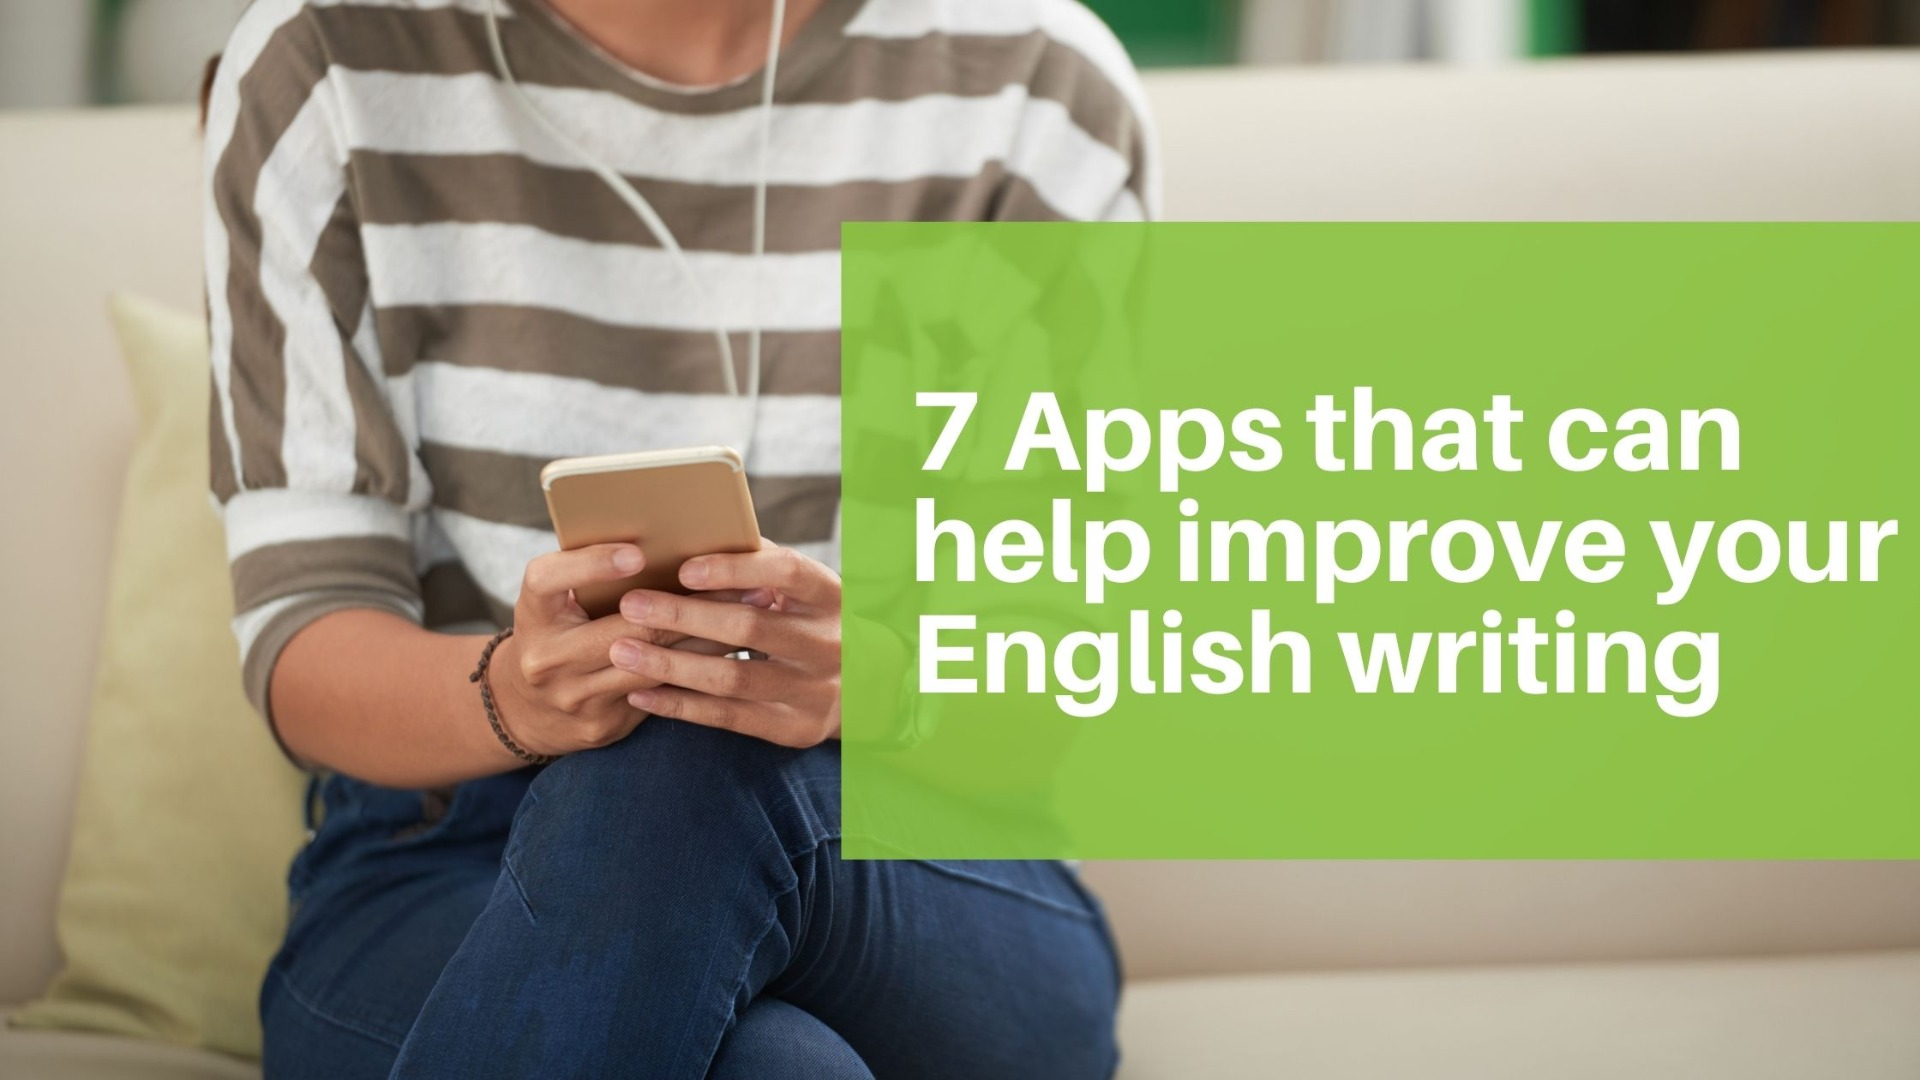 7 Apps to Improve English Writing